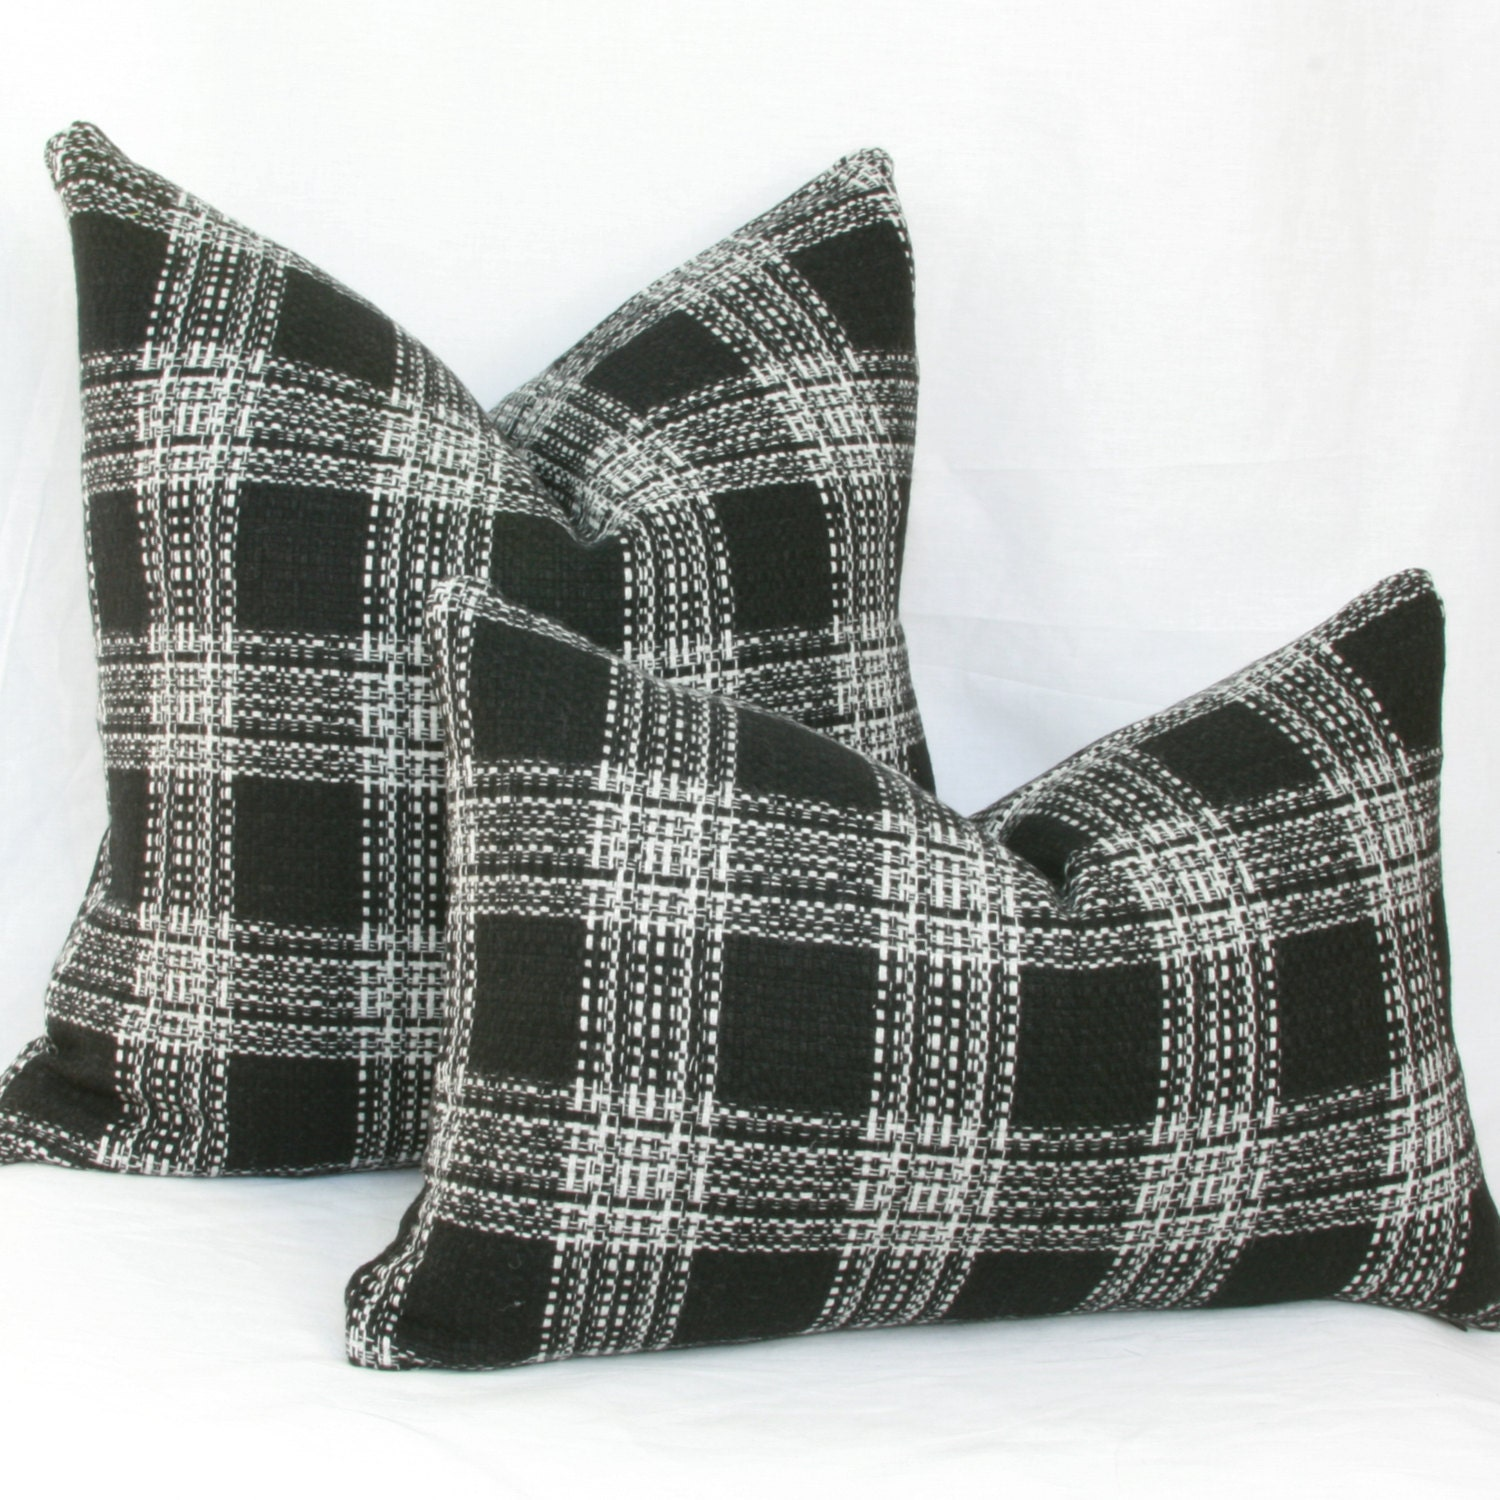 Decorative Plaid Pillows : Black & white wool plaid decorative throw pillow cover. 18 x